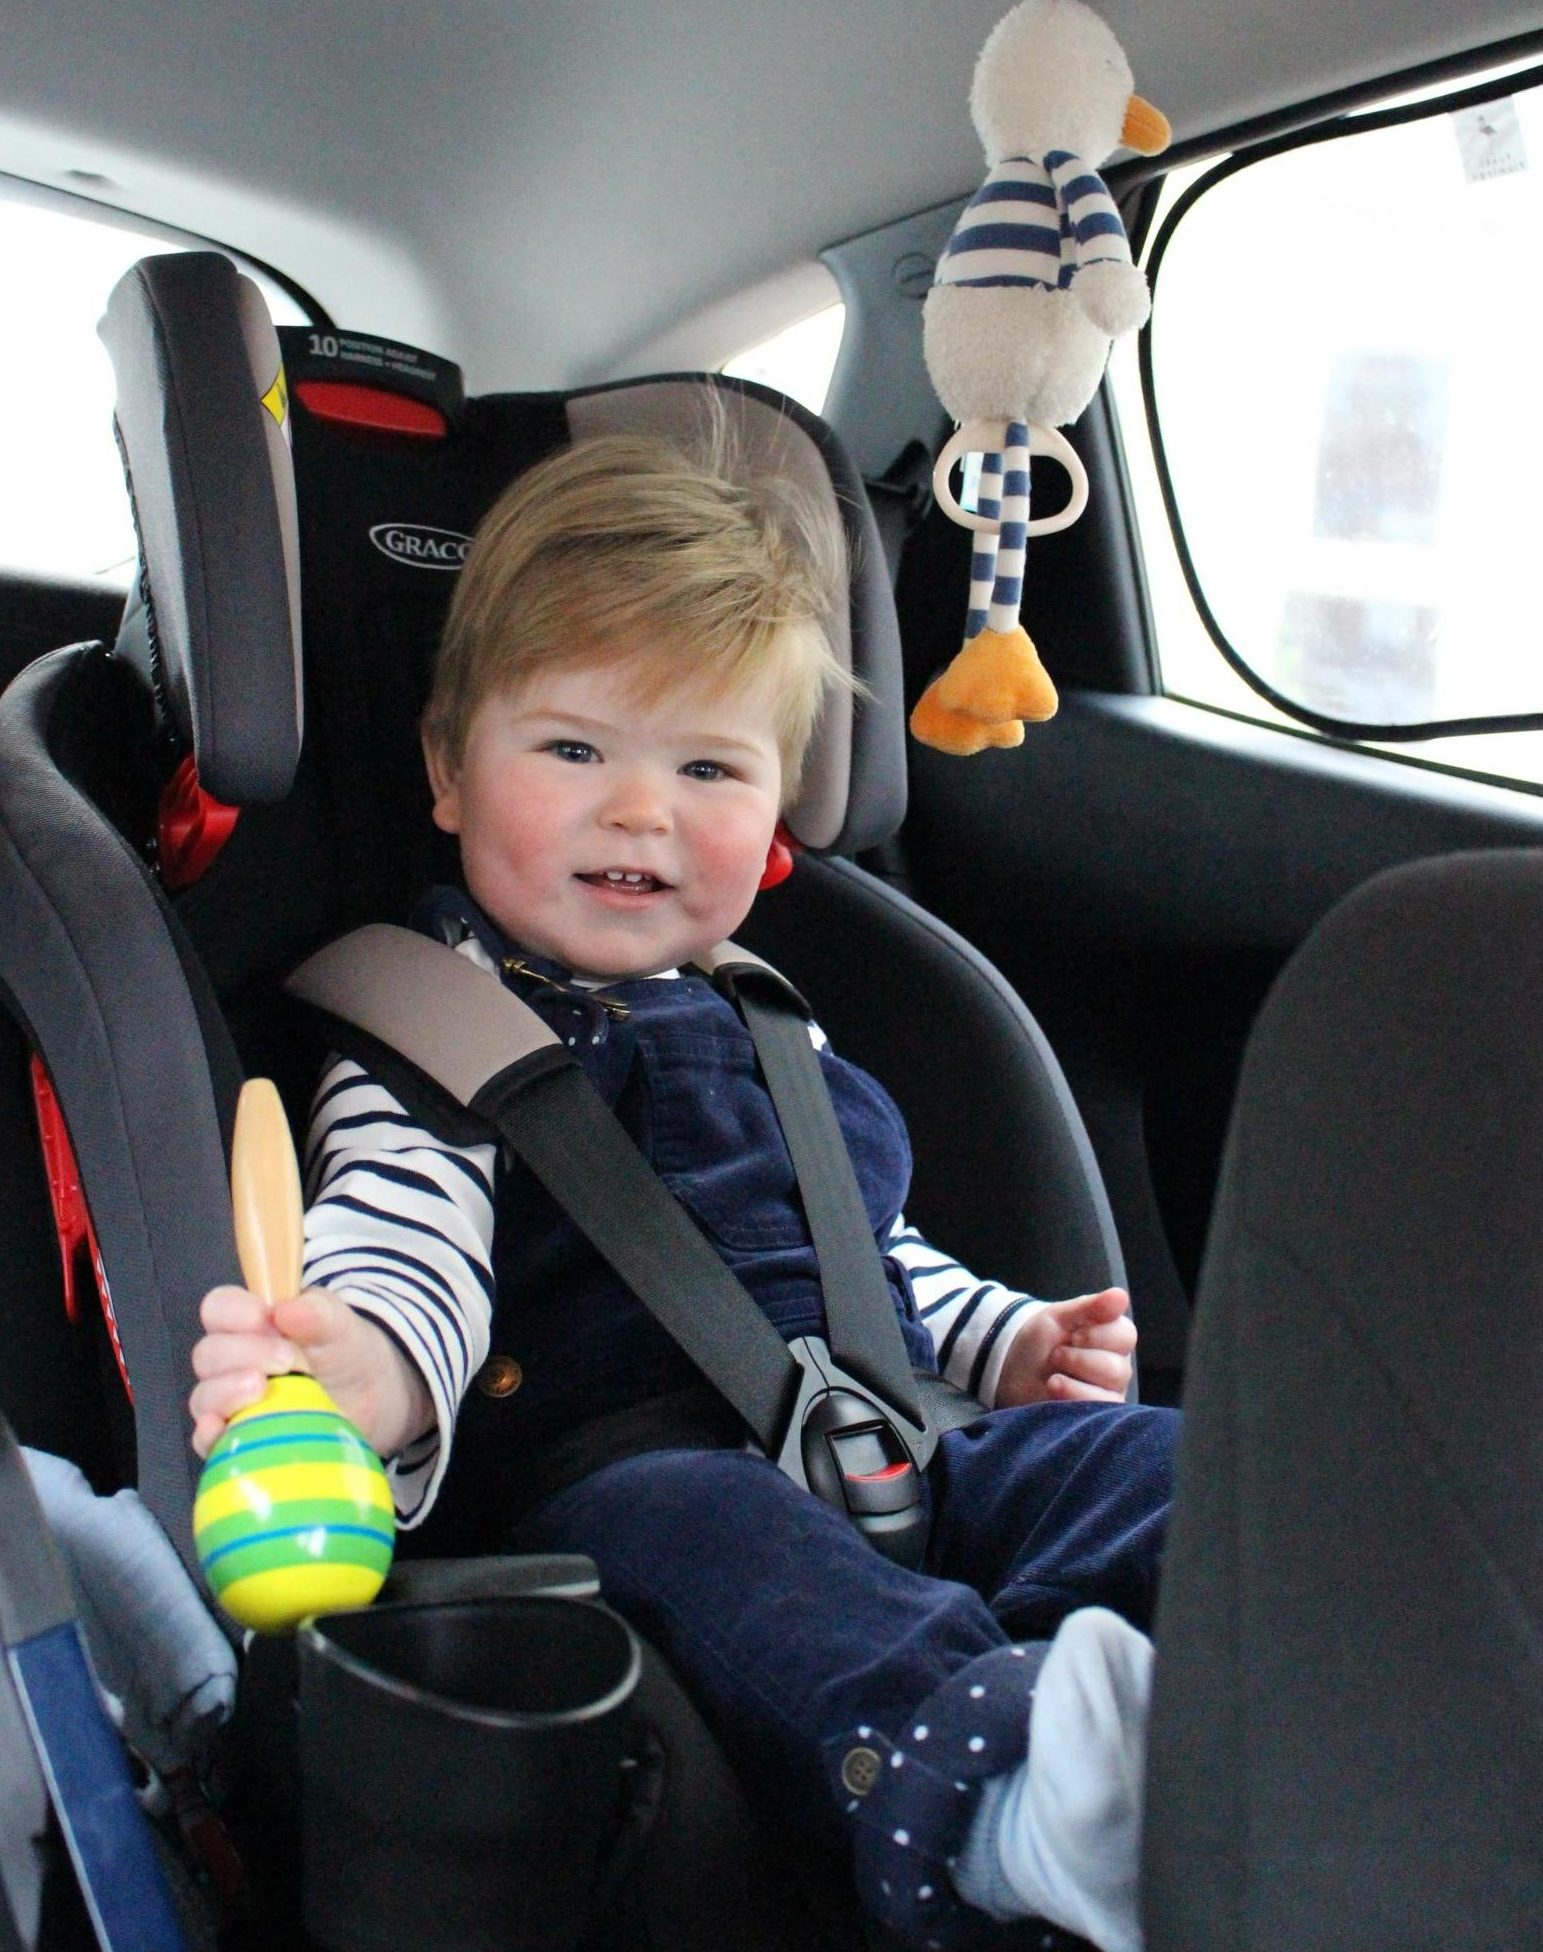 Milestone All-in-one car seat - perfect for the sixth trimester